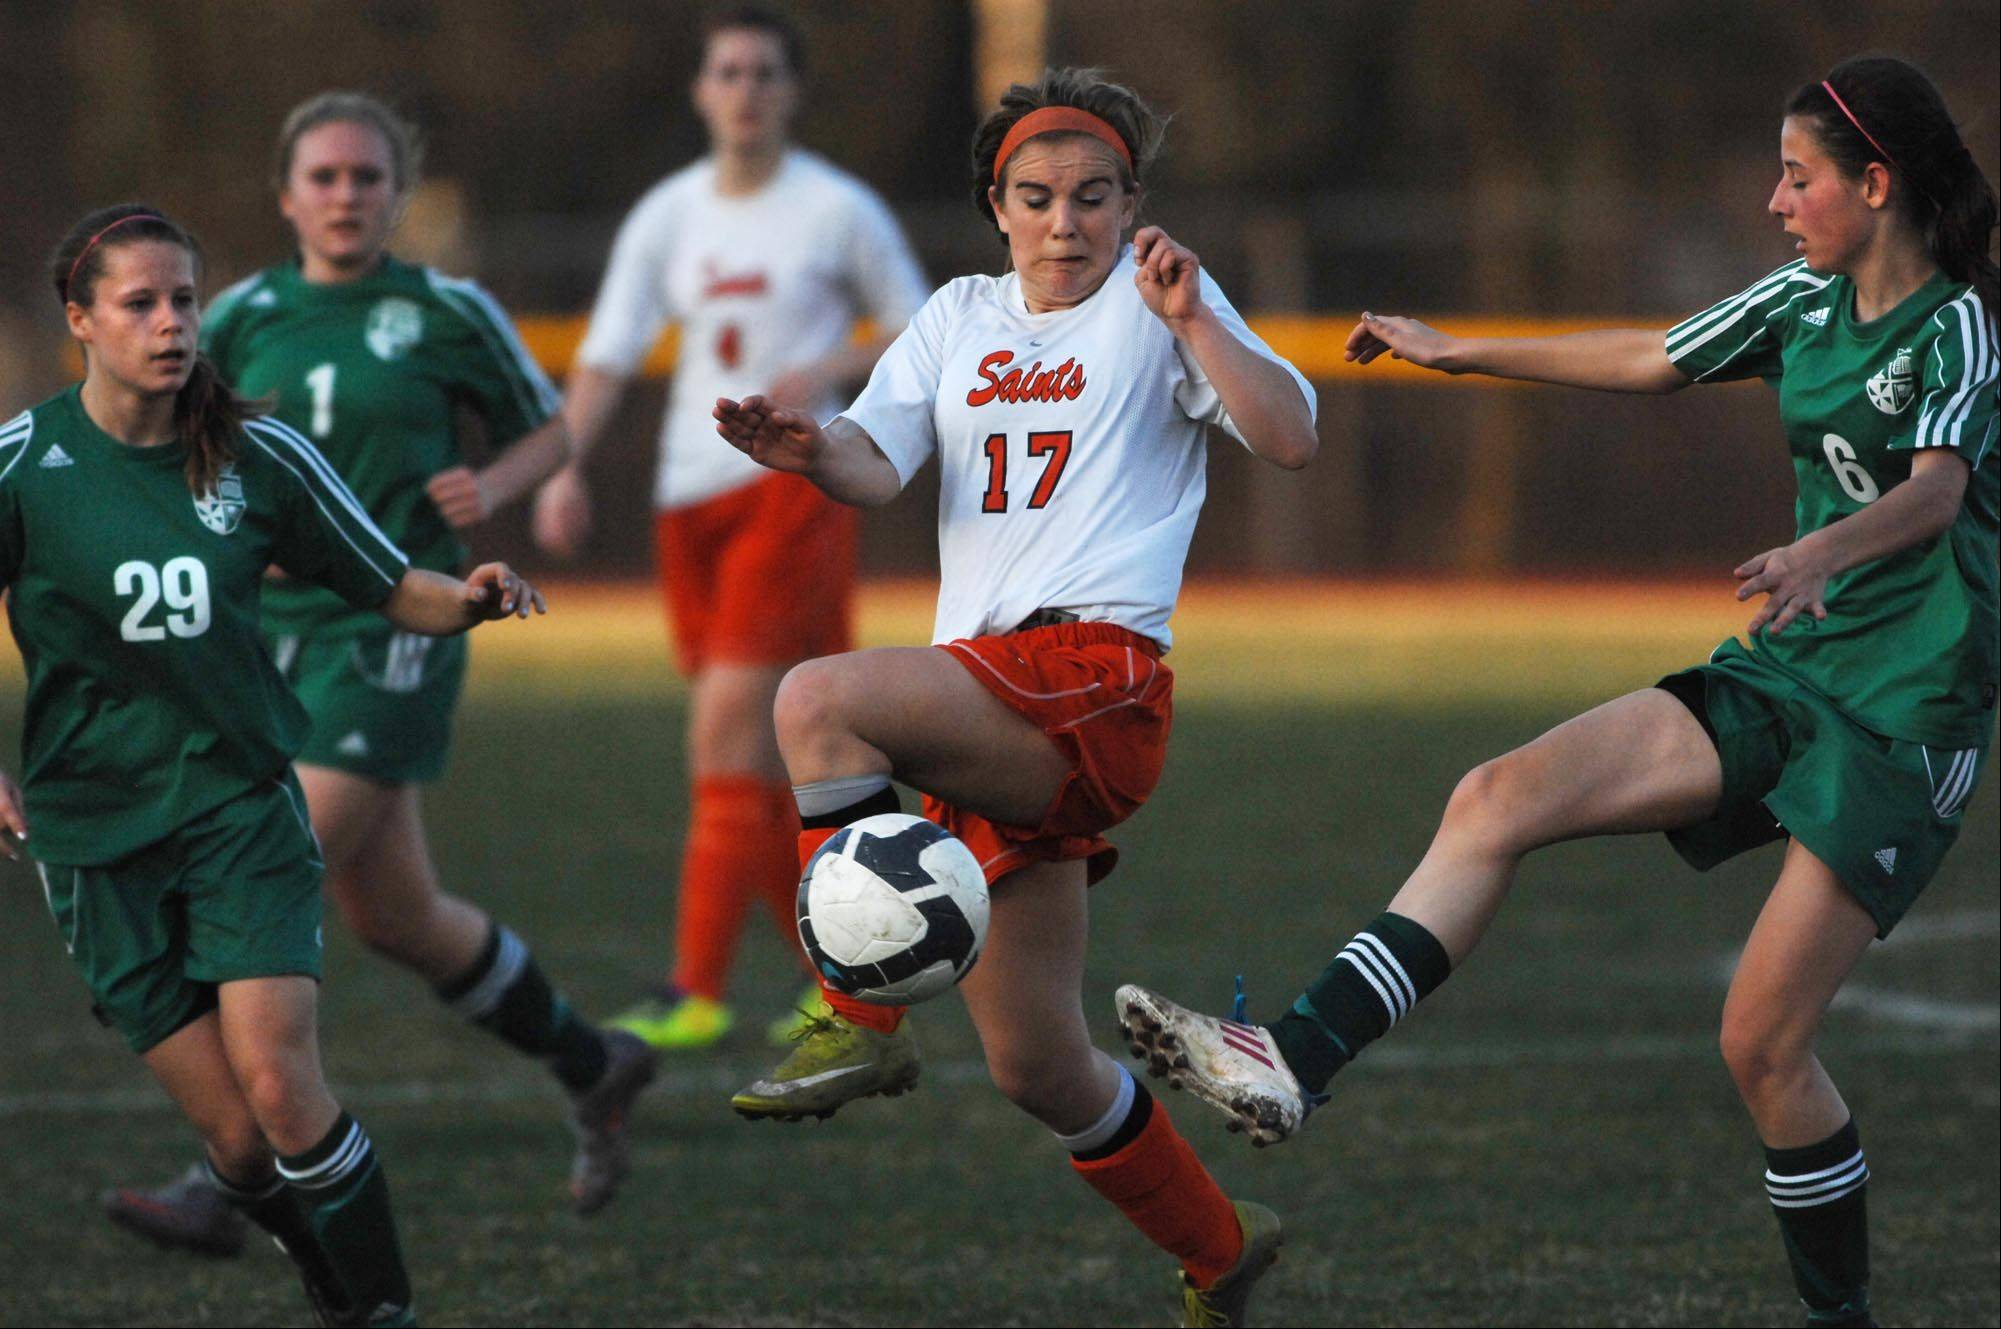 St. Charles East's Anna Corirossi steps in front of a pass from St. Edward's Chelsea Gnan to teammate Megan Kearney Thursday in St. Charles.